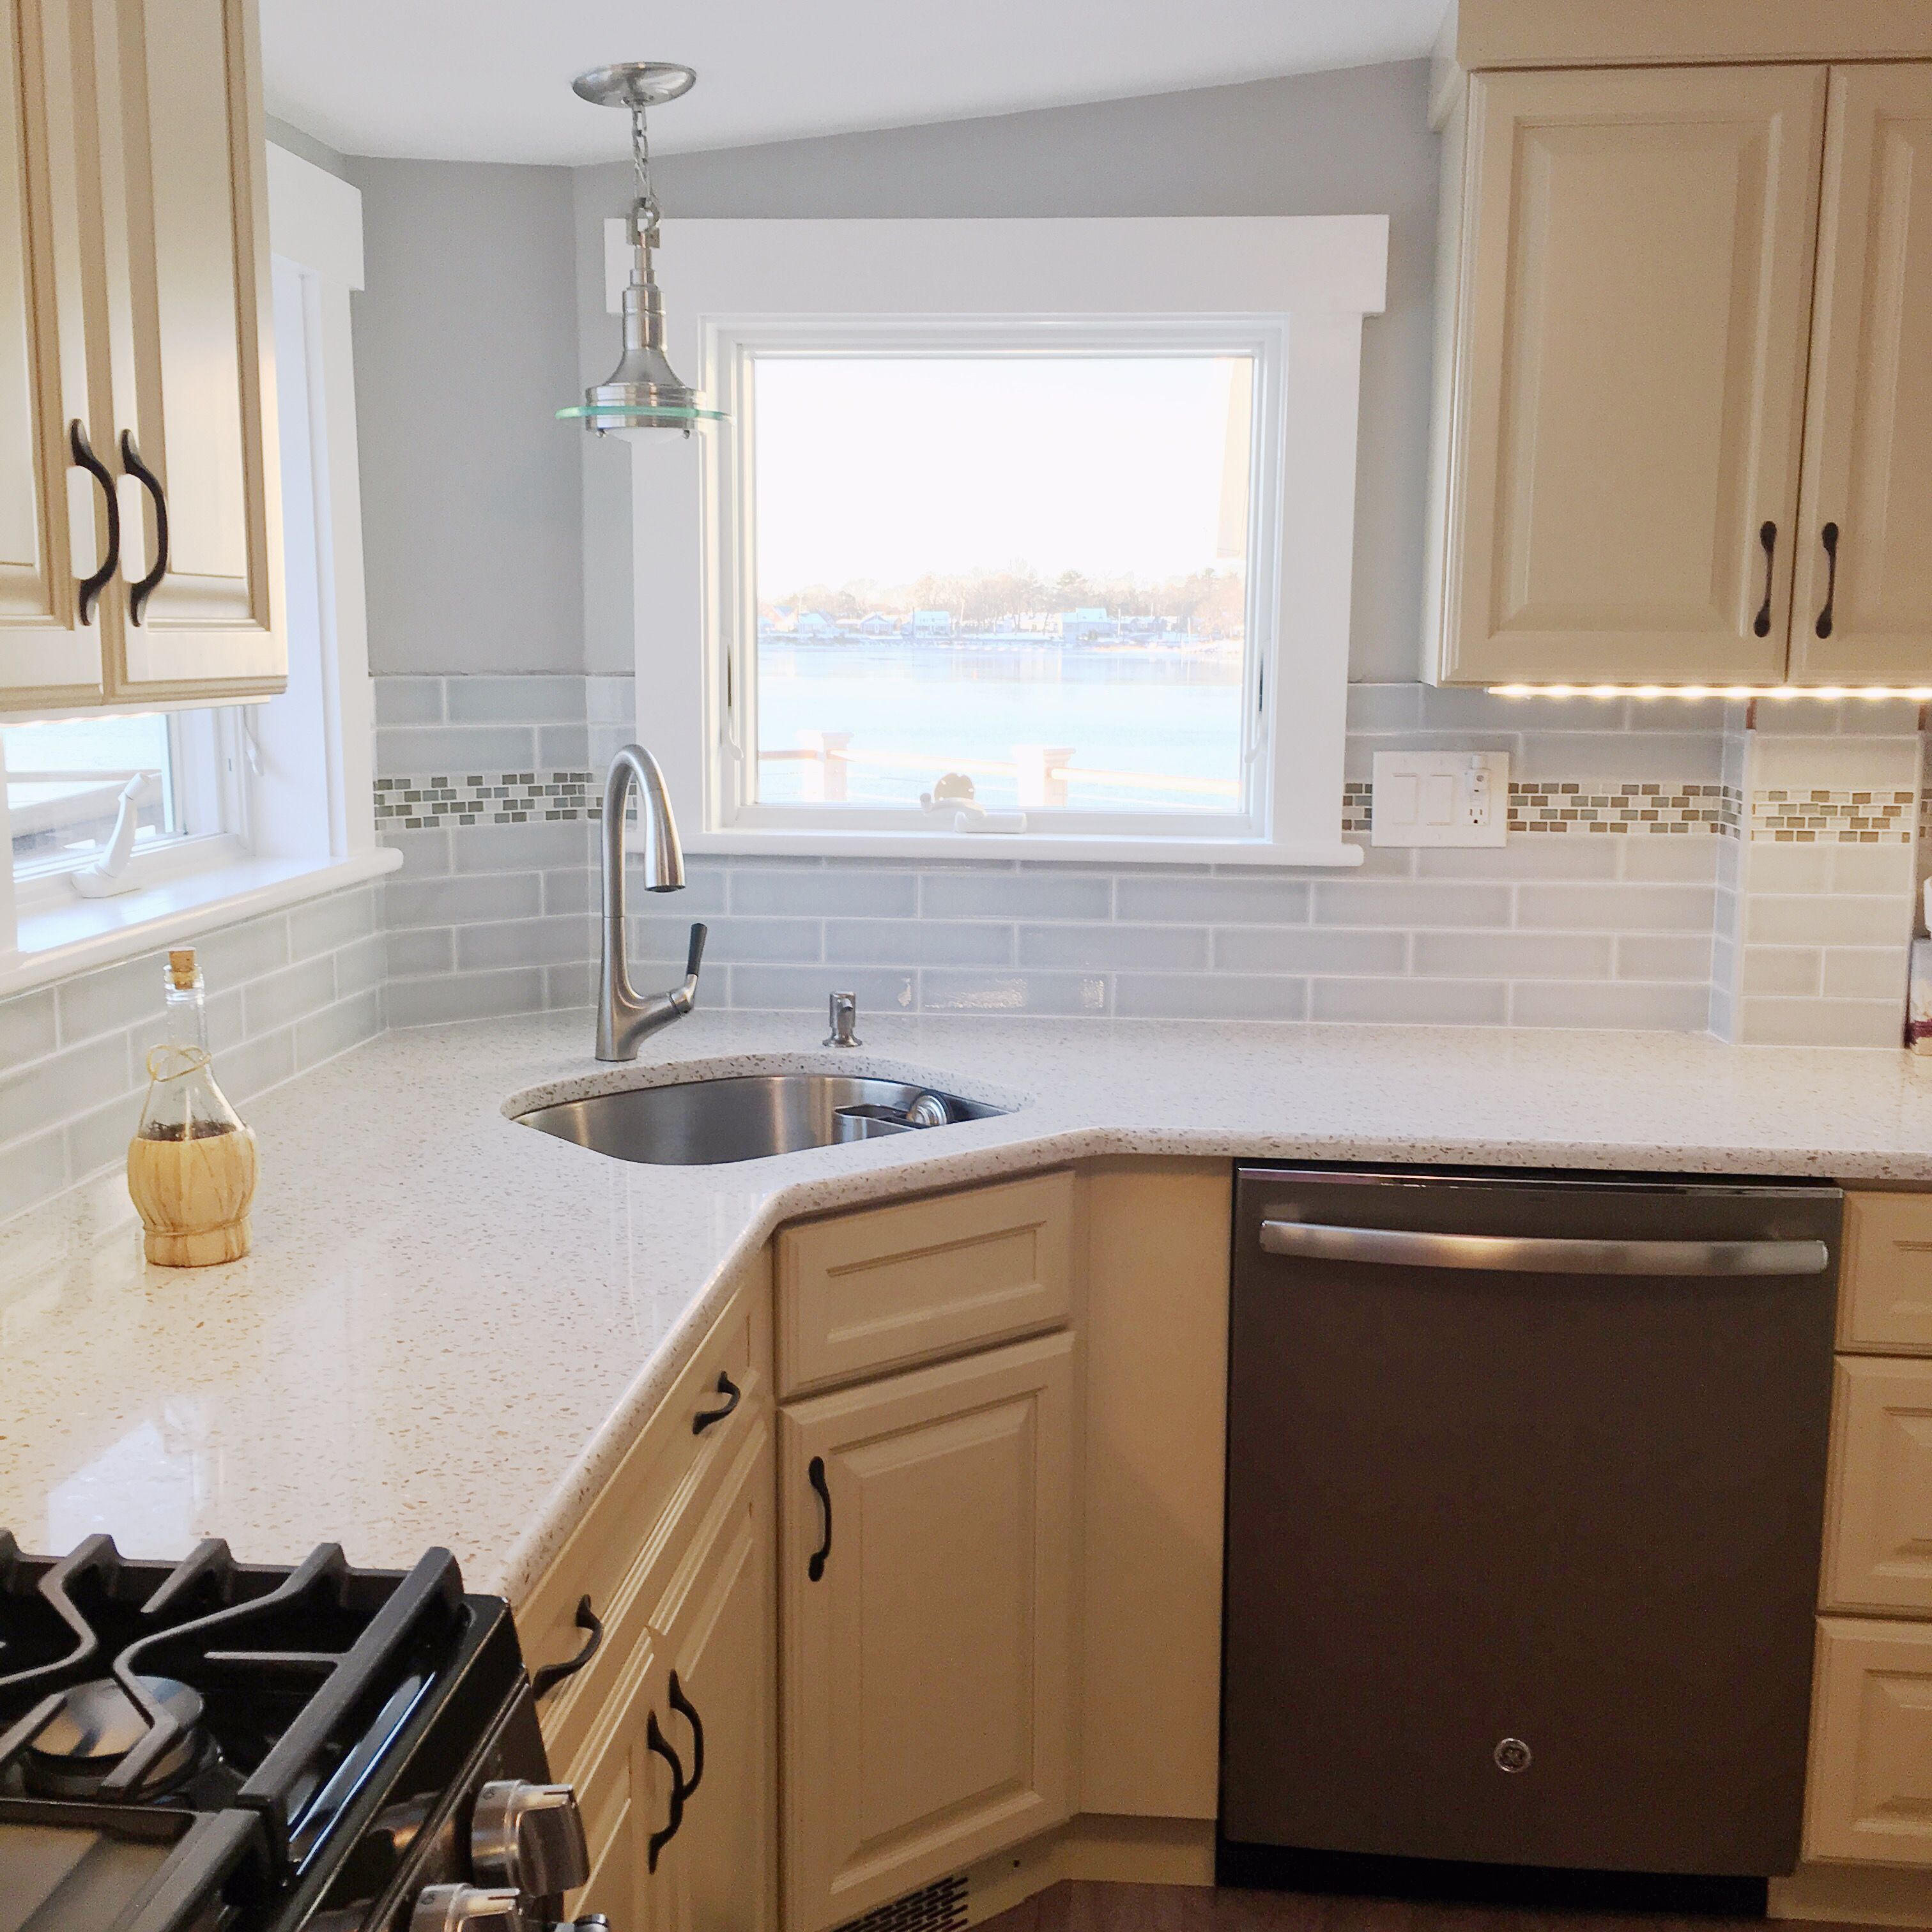 Sherwin williams believable buff - Eastman St Woodworks Kitchen Color Is Believable Buff By Sherwin Williams Designer Is